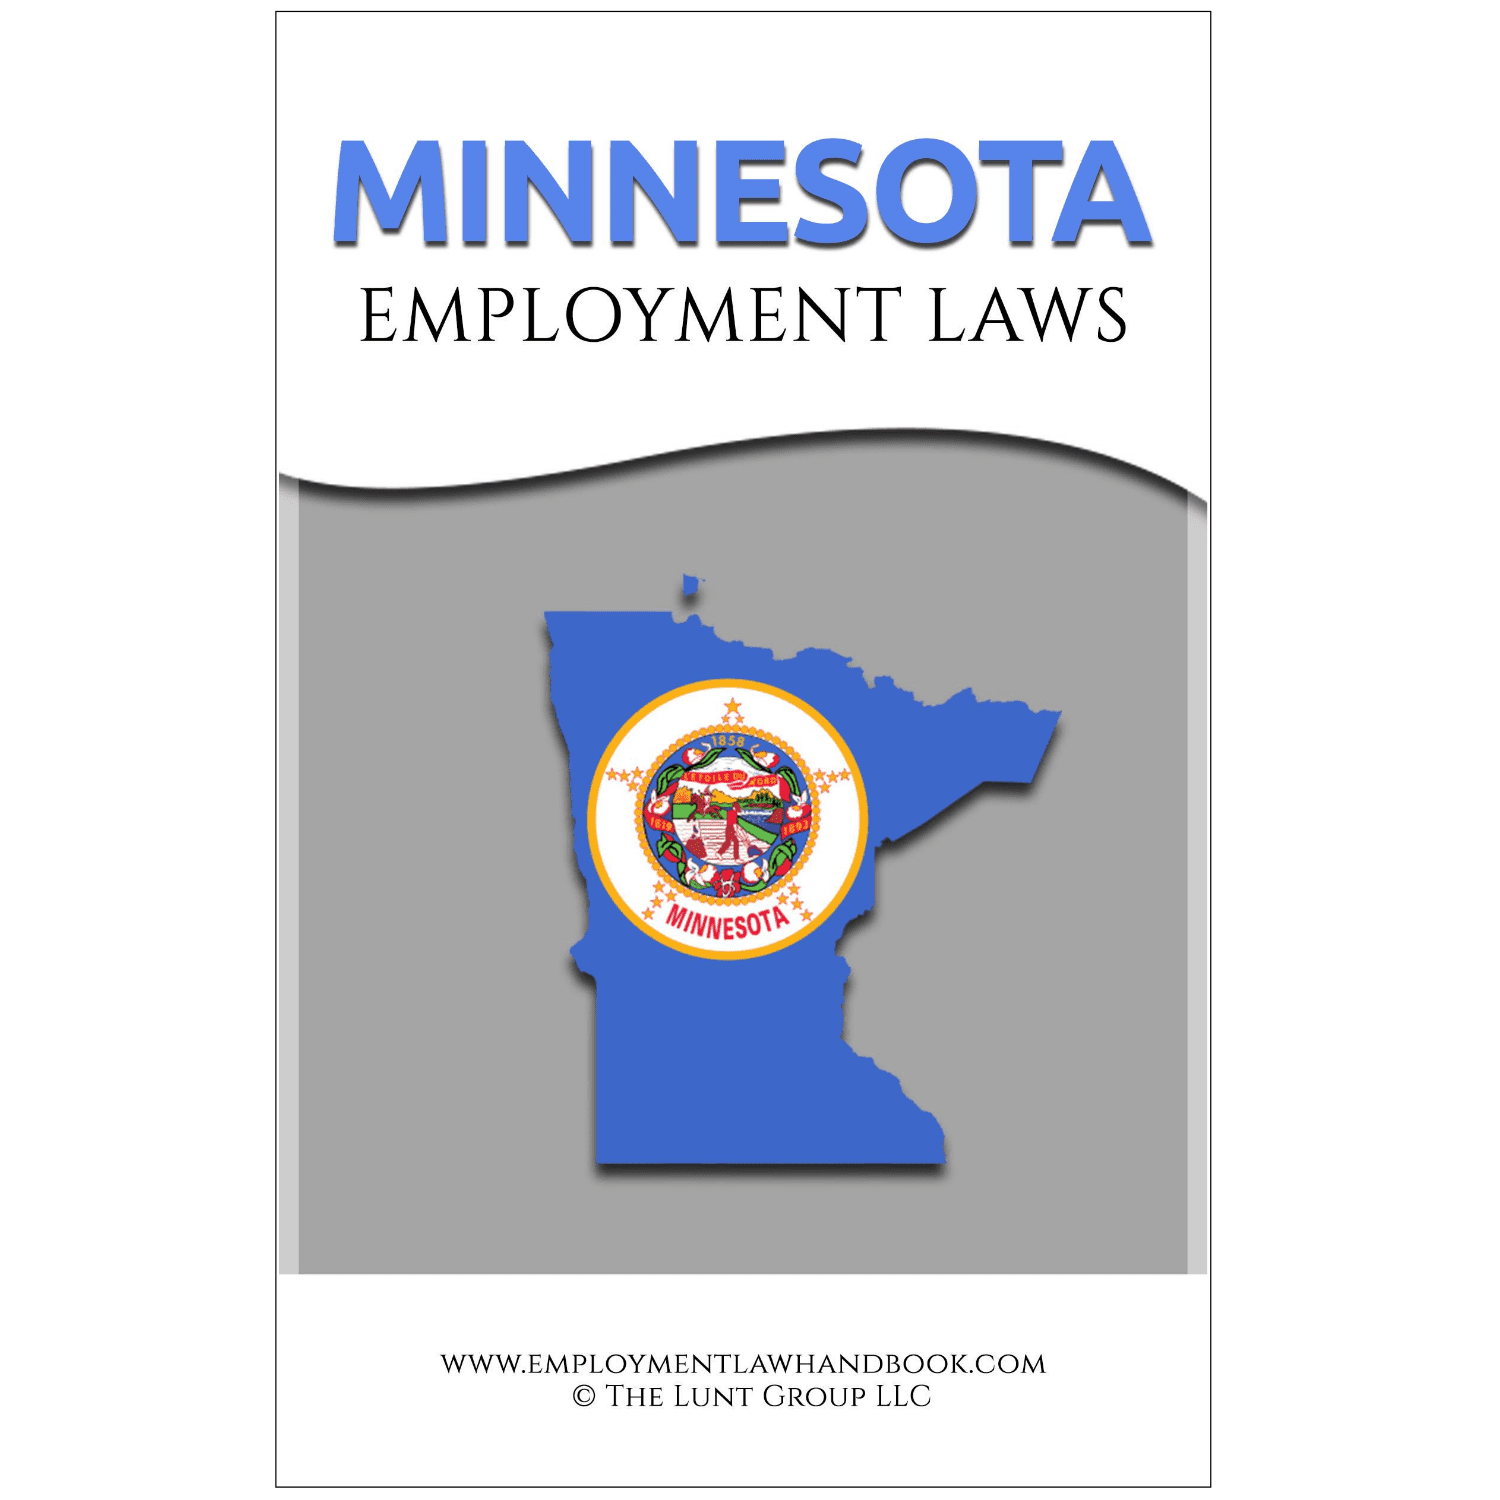 Minnesota Employment Laws_sq